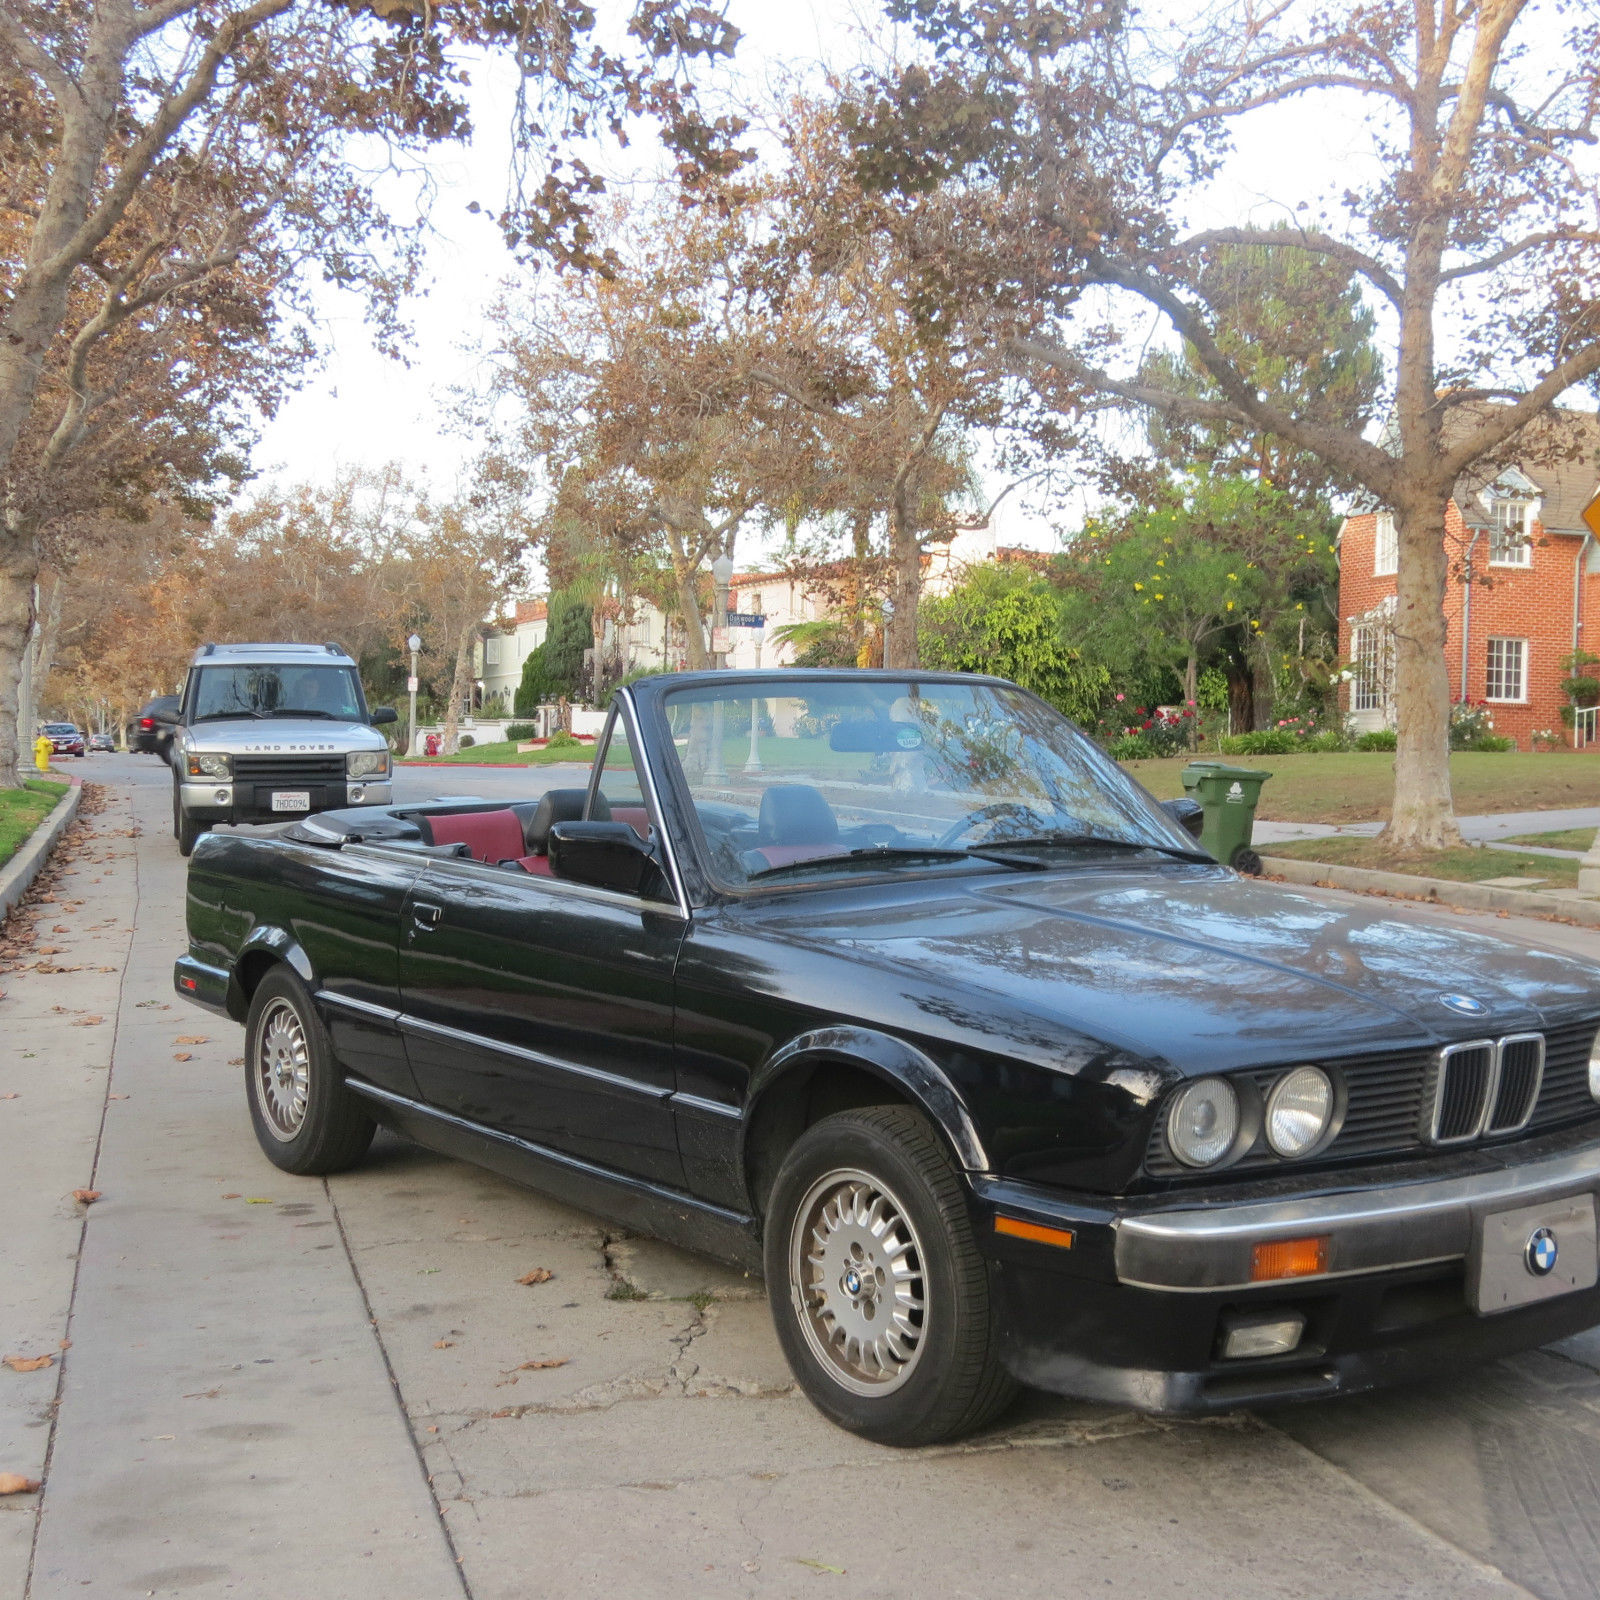 Bmw For Sale Los Angeles: AWESOME FUN CUSTOM NO RESERVE 1988 BMW 325i AUTOMATIC